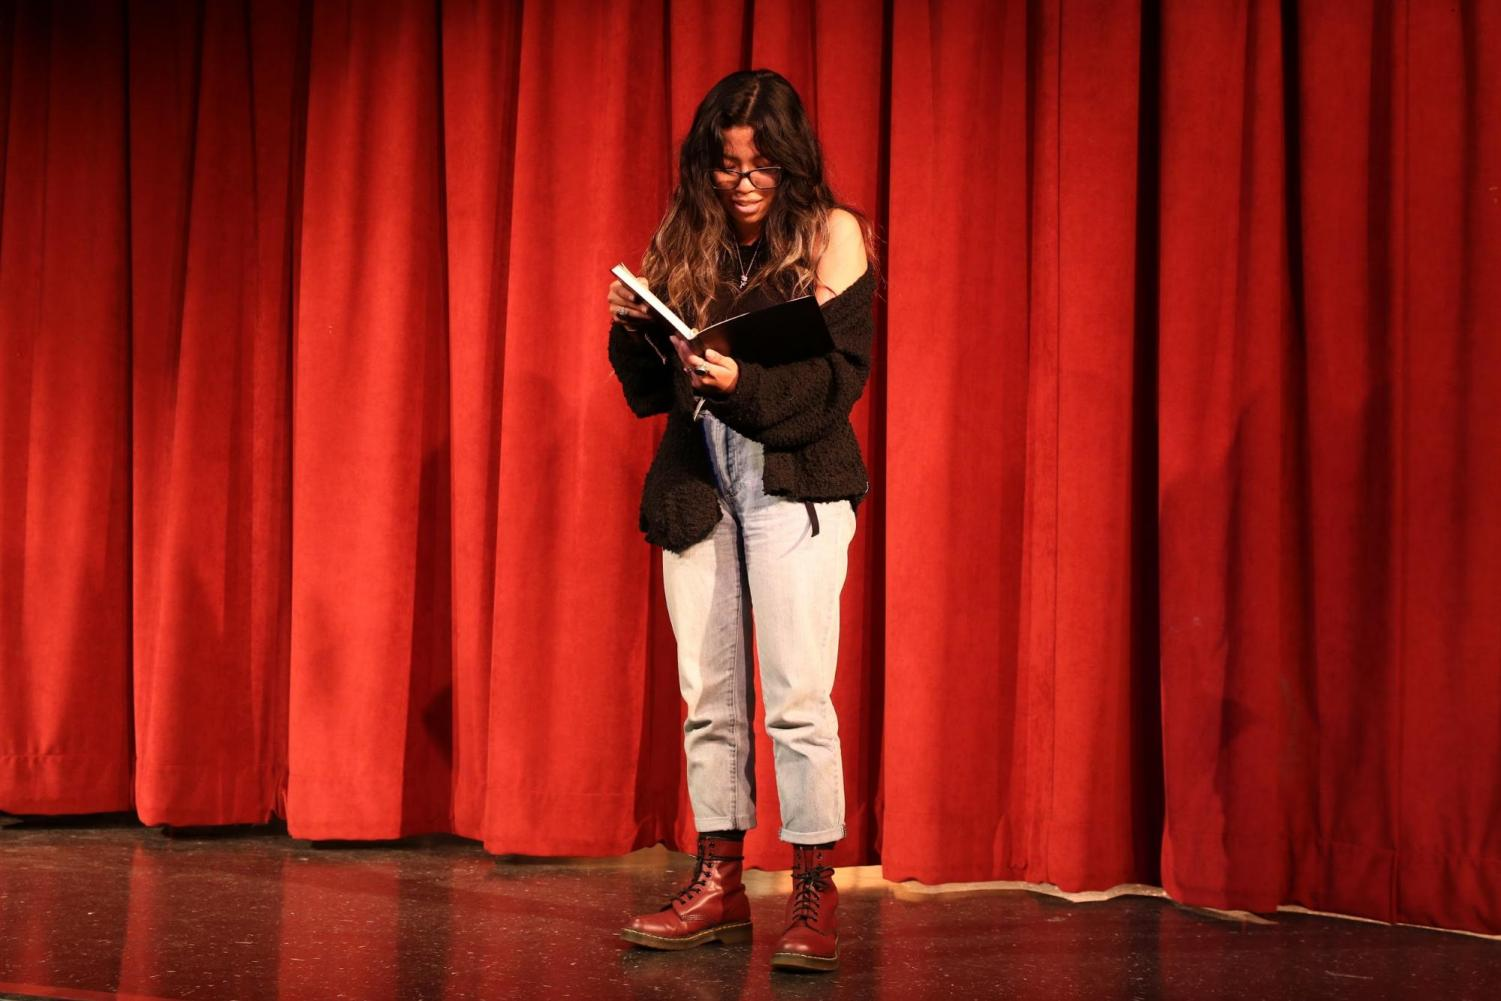 Junior+Lizzeth+Aguilar+performed+her+Untitled+original+poem+during+the+Poetry+Slam+on+Feb.+28+in+the+DHS+Theater.+%E2%80%9CAt+first+I+was+nervous+but+I+kept+reading+and+kept+going%2C%E2%80%9D+Aguilar+said.+%E2%80%9CAs+I+kept+reading%2C+I+actually+felt+that+performing+was+a+peaceful+way+to+express+what+I+feel.%E2%80%9D